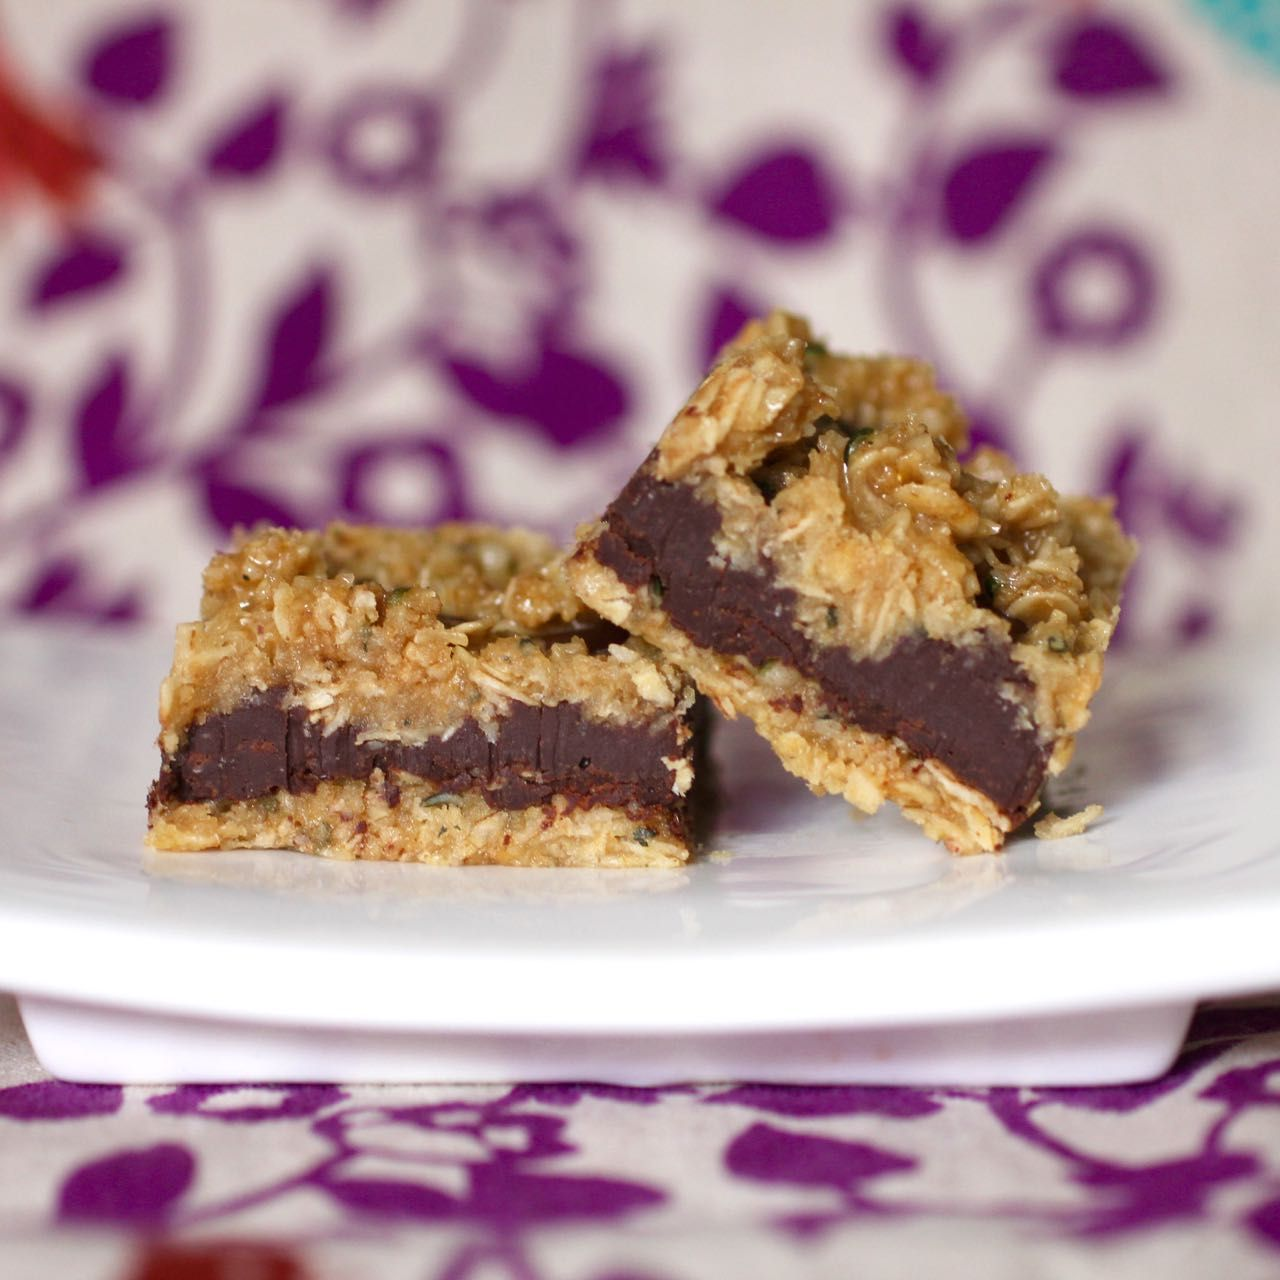 Green Gourmet Giraffe: No bake chocolate oat slice